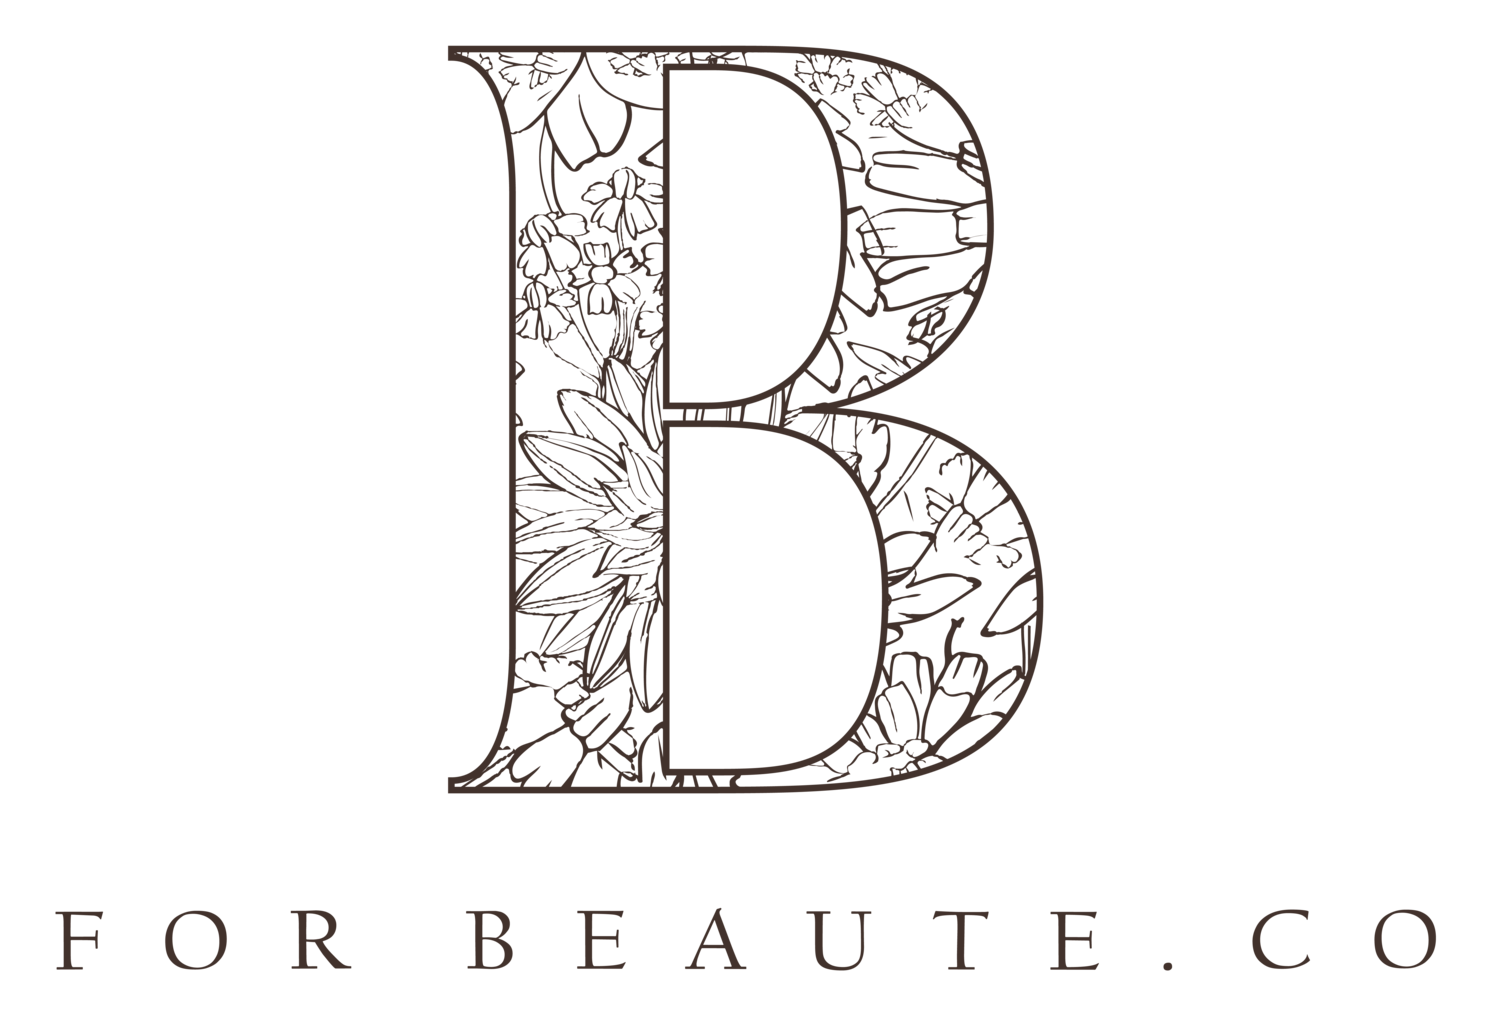 B For Beaute.co